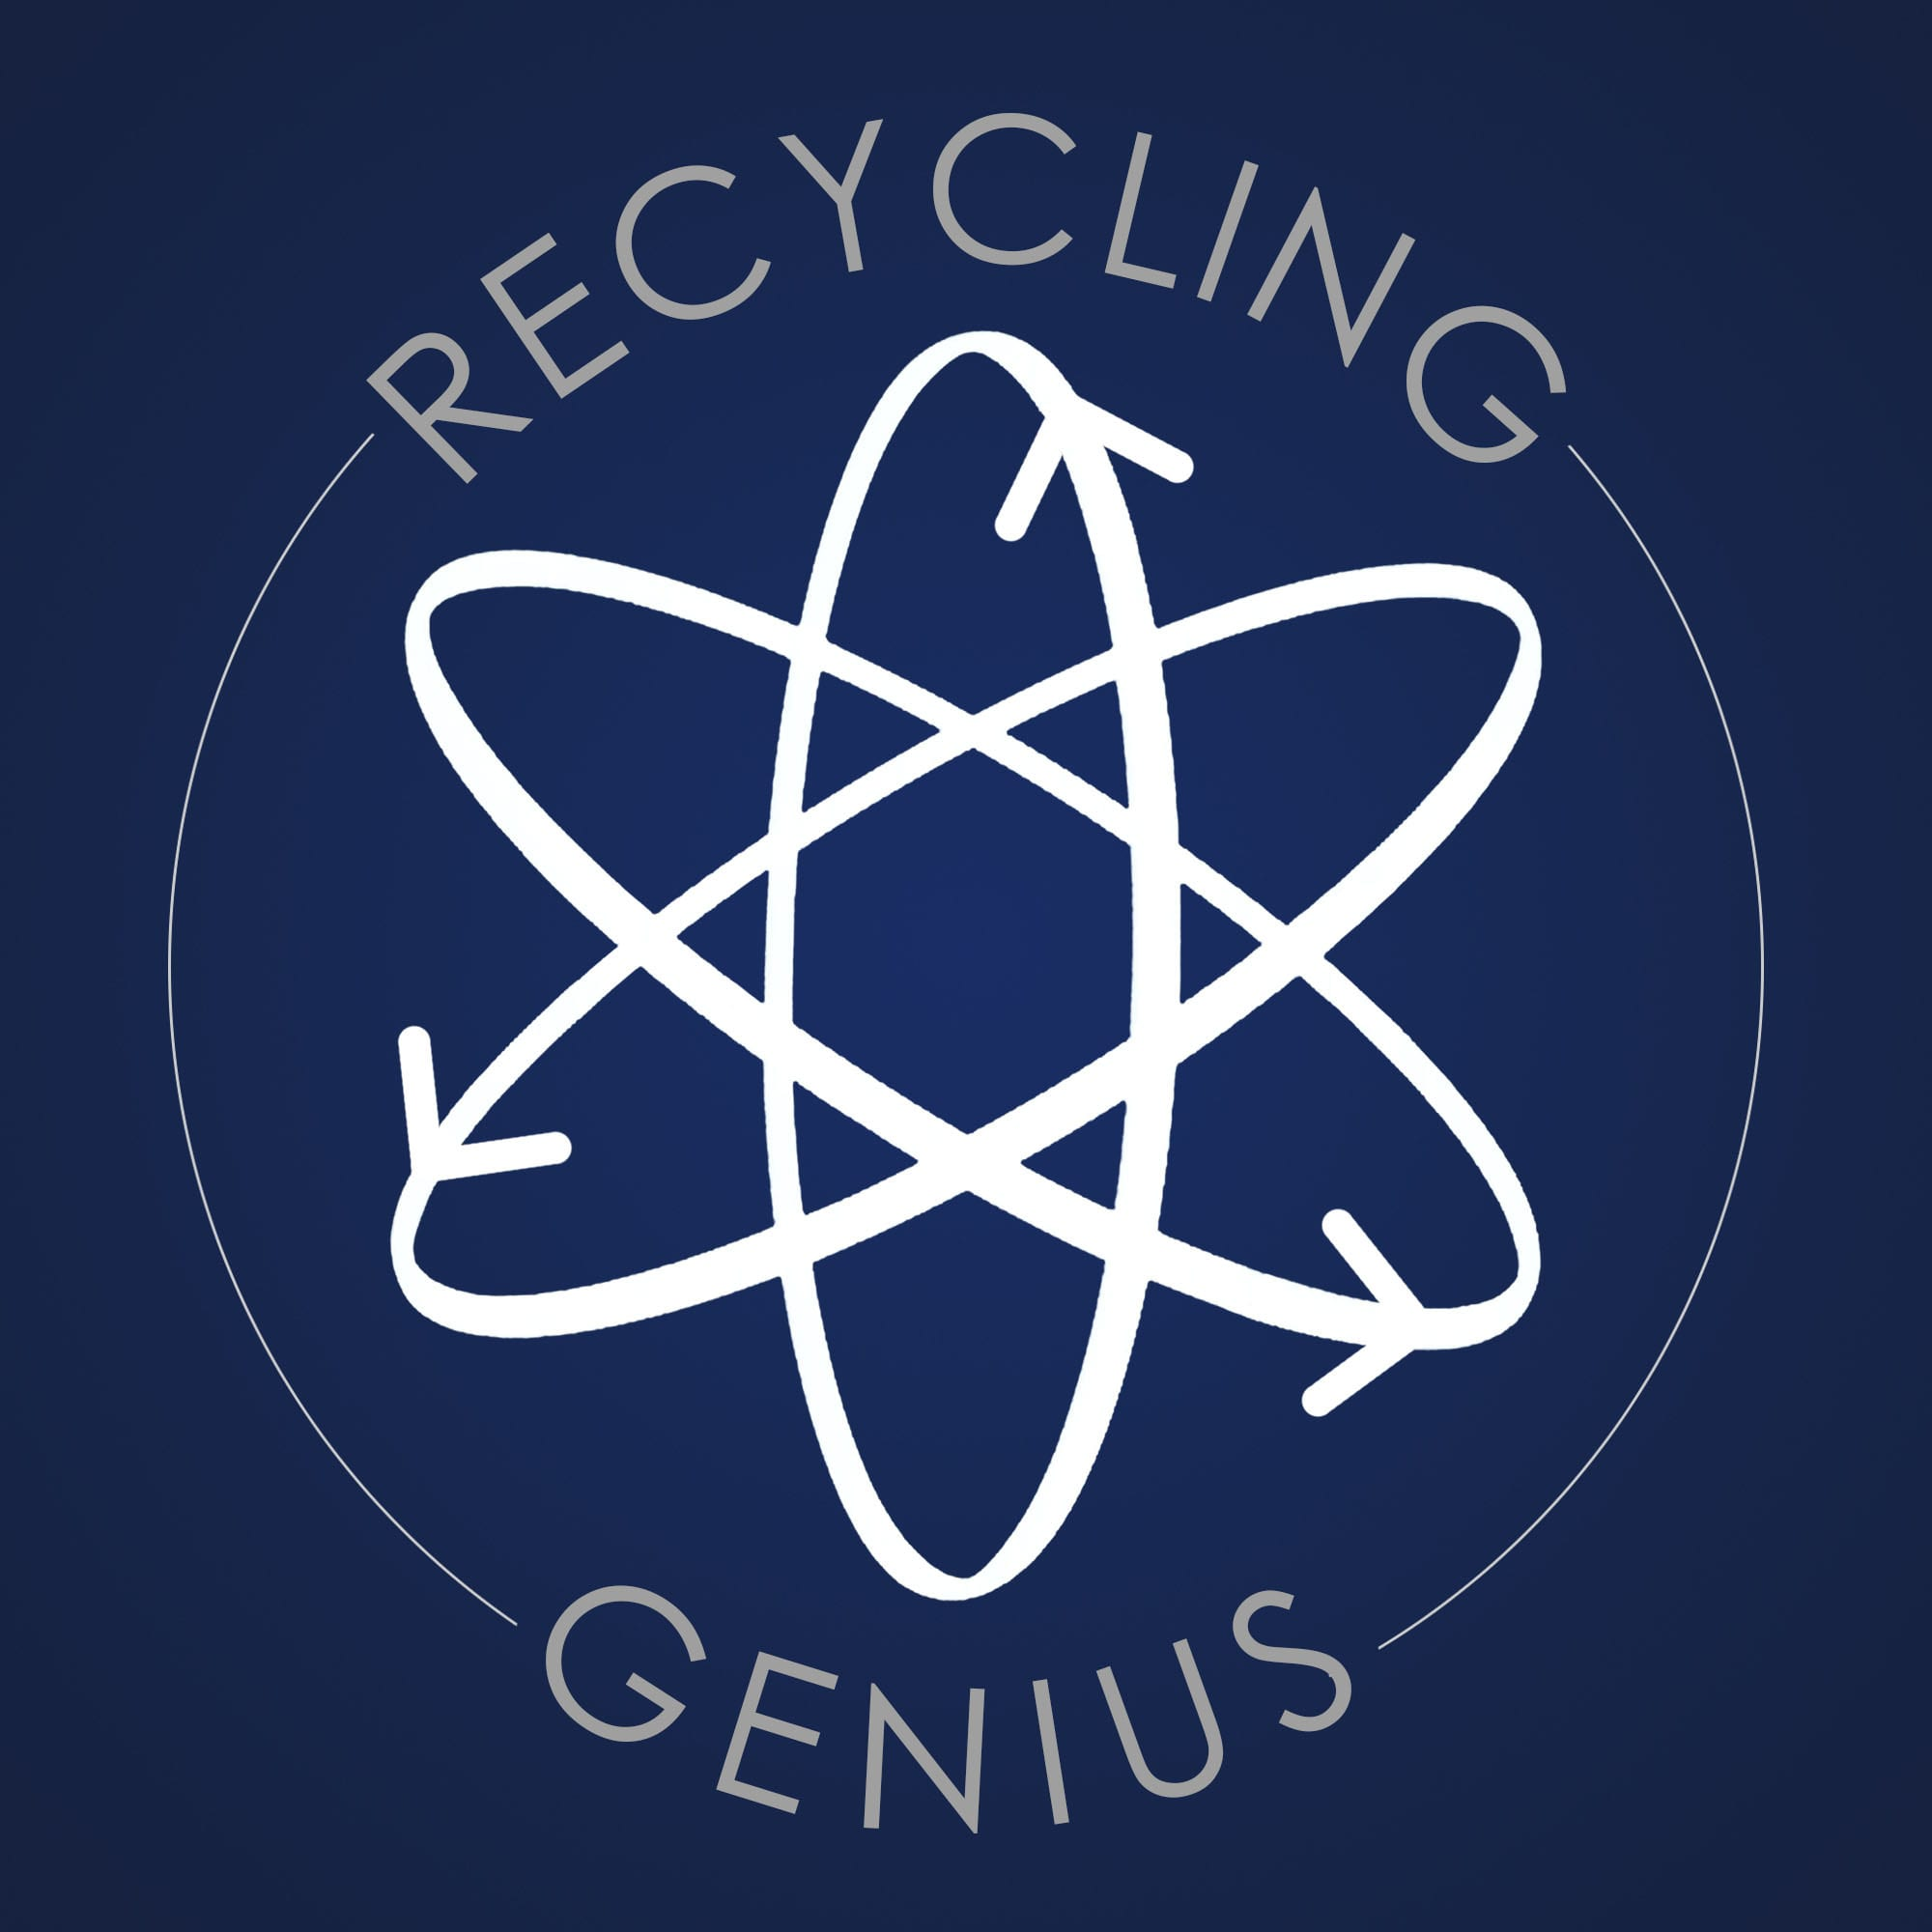 recycling-genius-logo